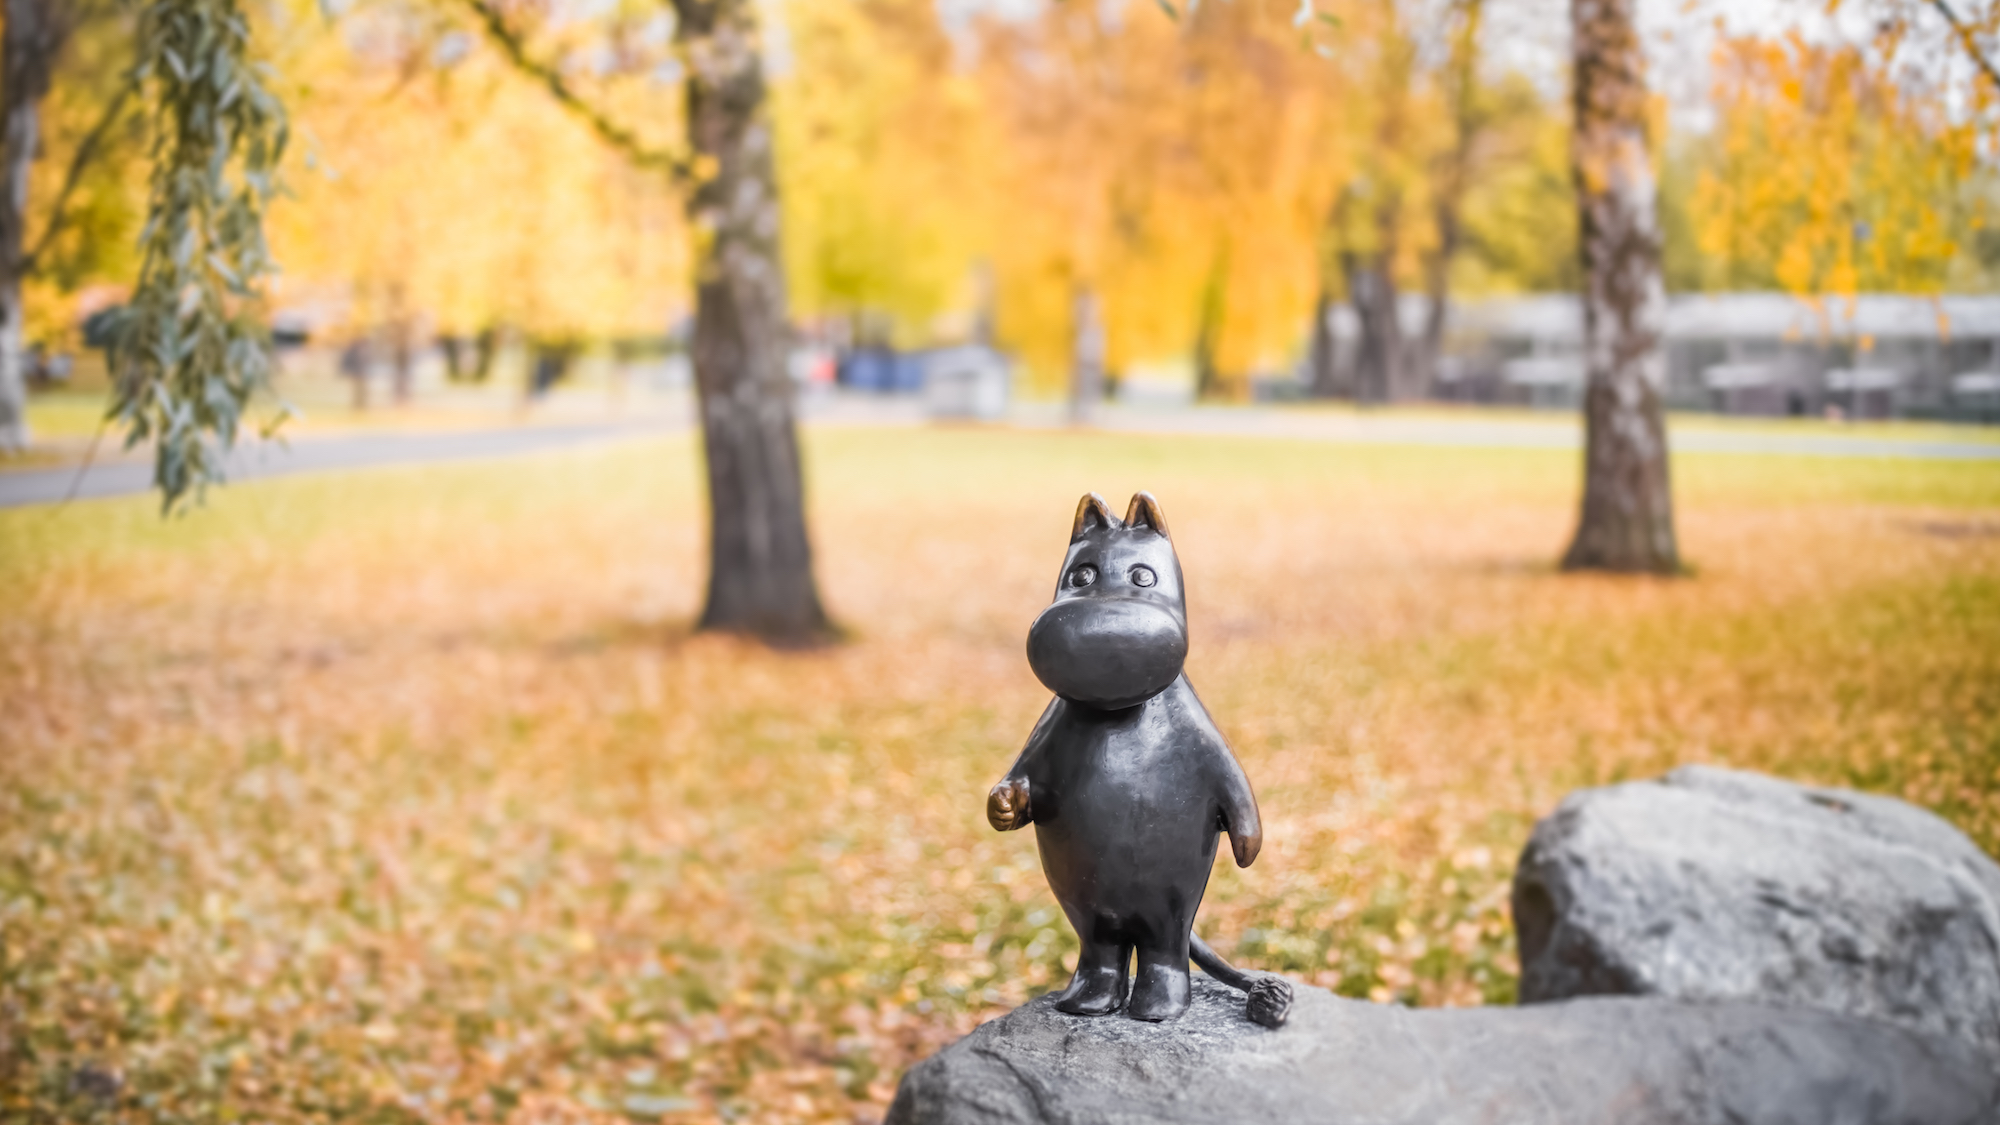 There's a Moomin museum in Finland and you should visit before the new series Moominvalley starts